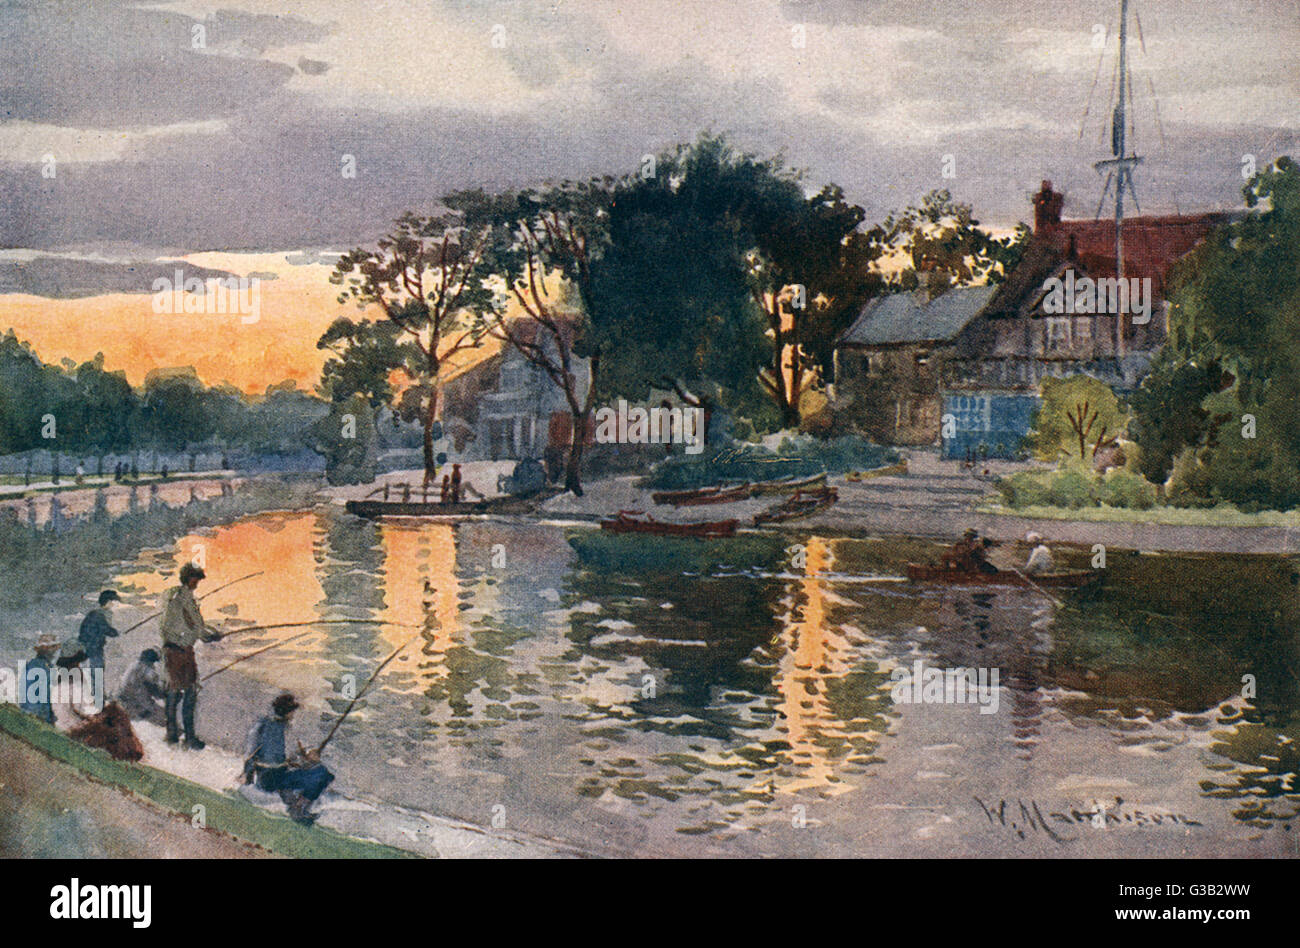 Cambridge: University Boat- Houses on the Cam at sunset        Date: 1907 - Stock Image